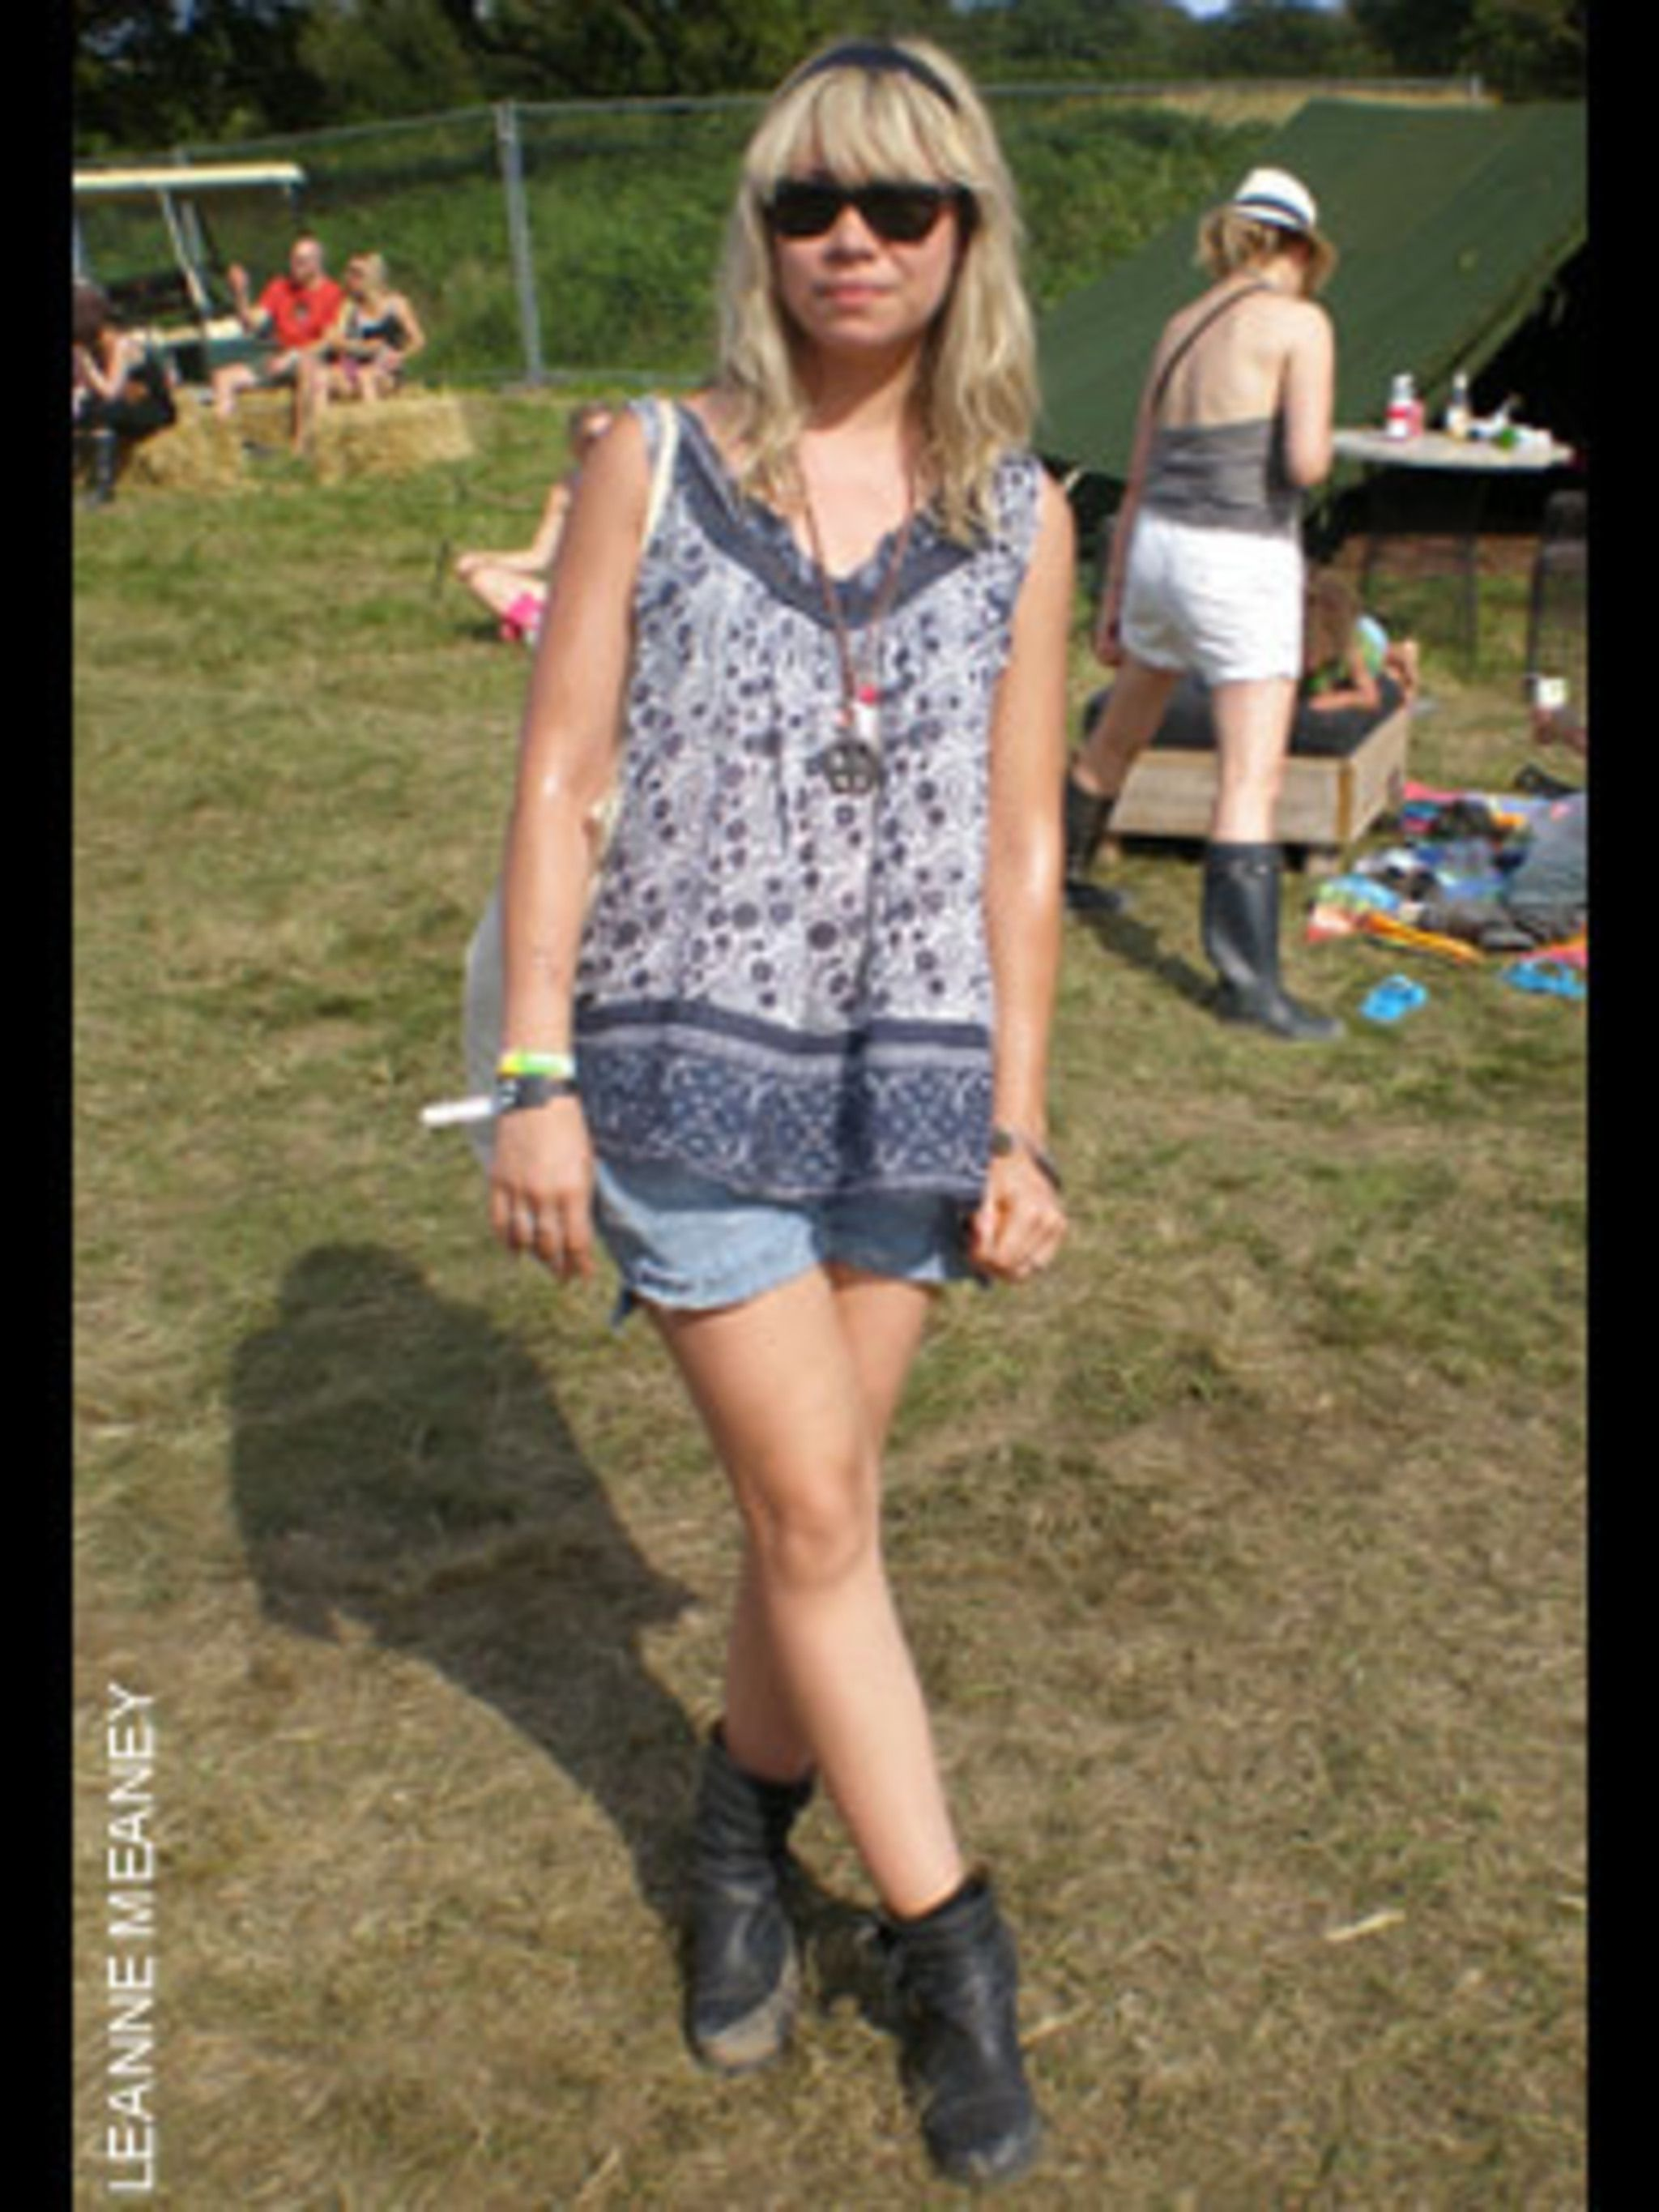 <p>Tara Rocks, 28, Promoter, wearing vintage shorts and top, shoes from Gap, and a bag from West Rocks.</p>